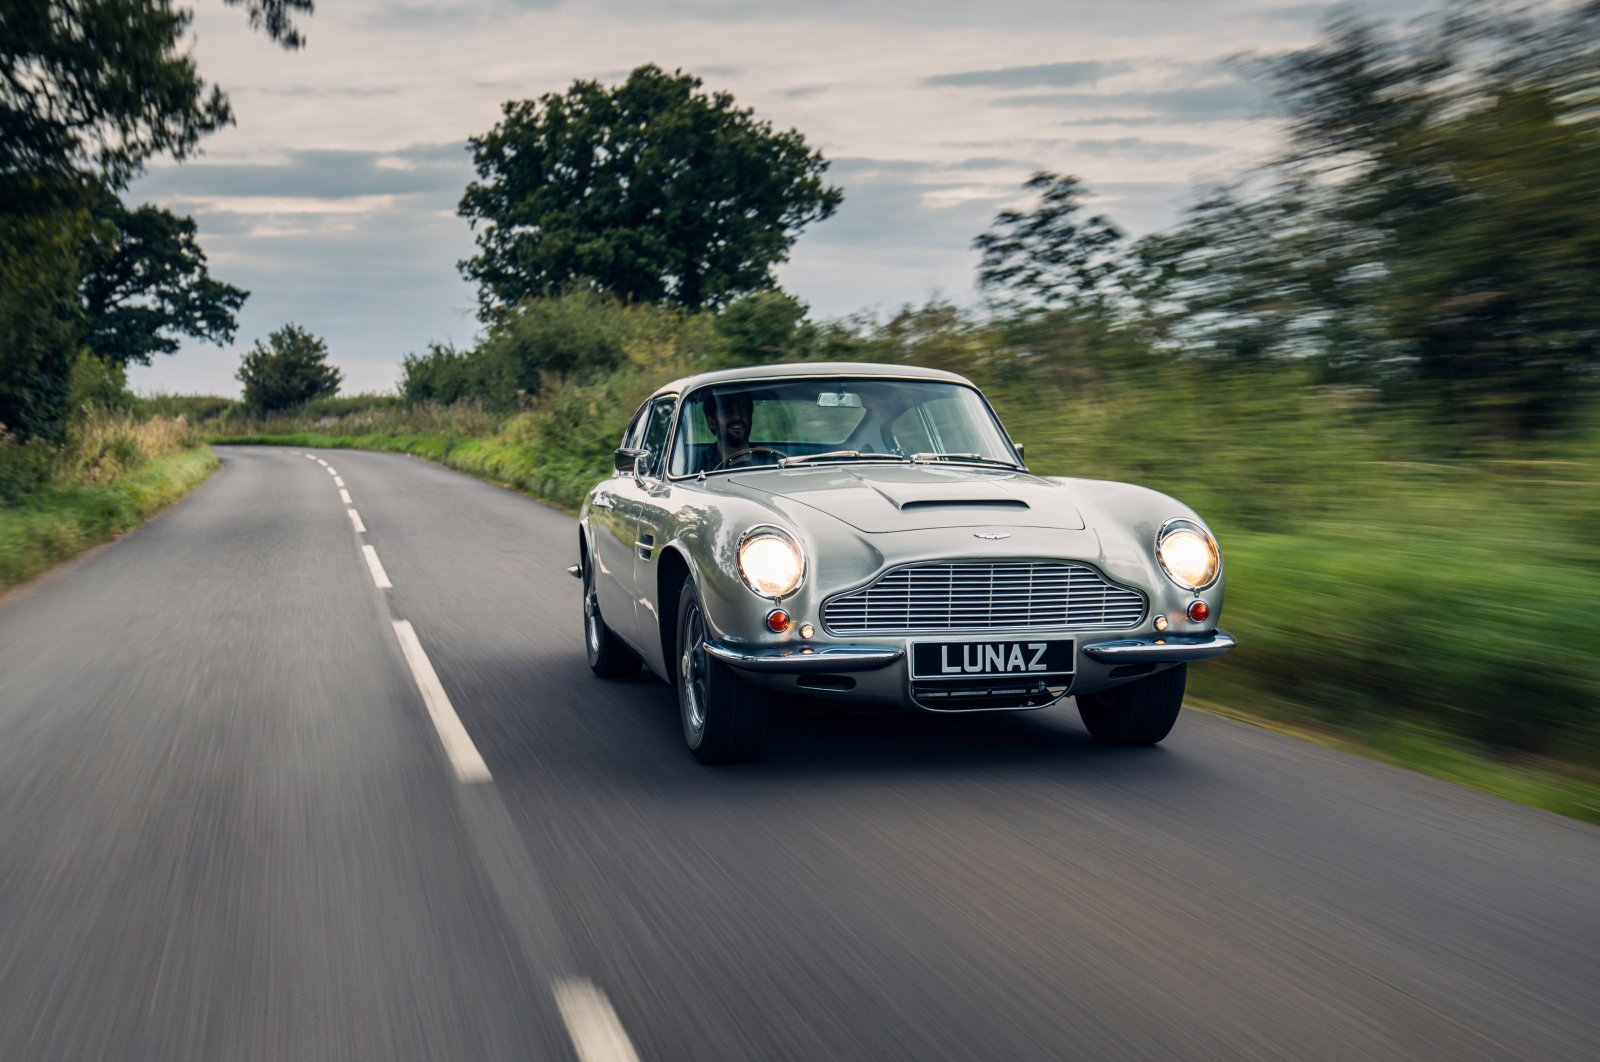 An Aston Martin DB6 is seen in this undated handout picture provided by Lunaz, a company that turns classic gasoline-powered cars into electric vehicles, in Silverstone, U.K. (Lunaz via Reuters)